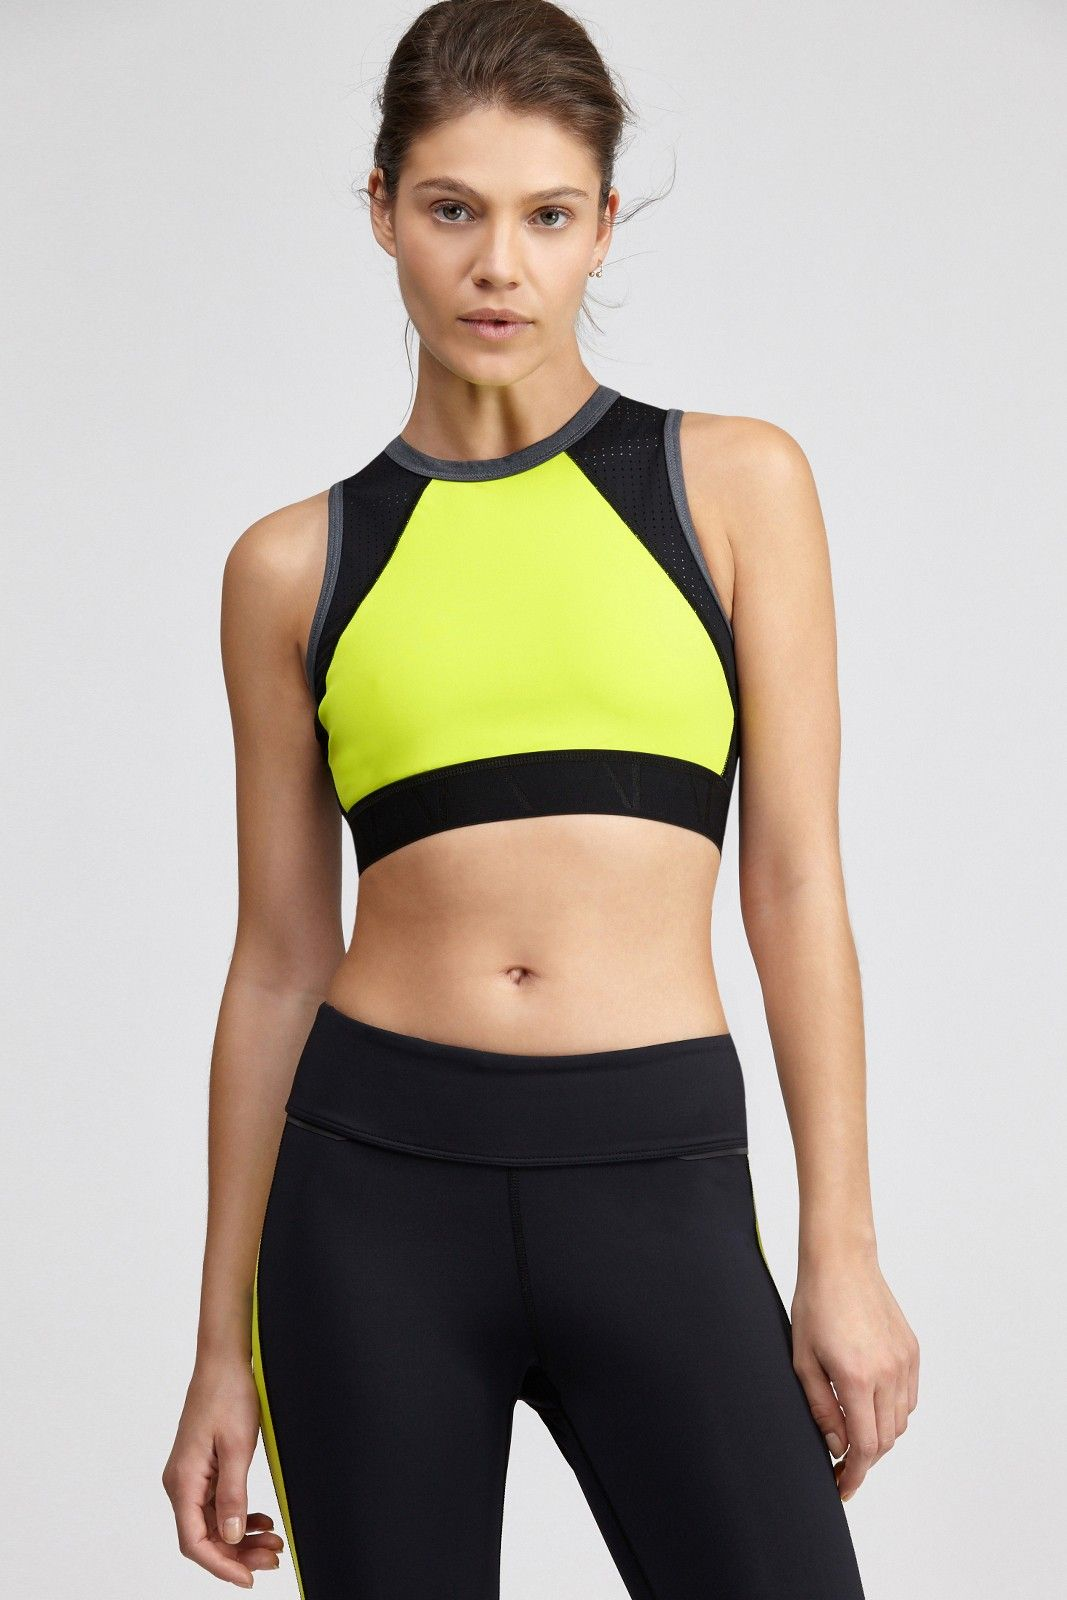 The Swell Crop Top from Alala is a supportive color